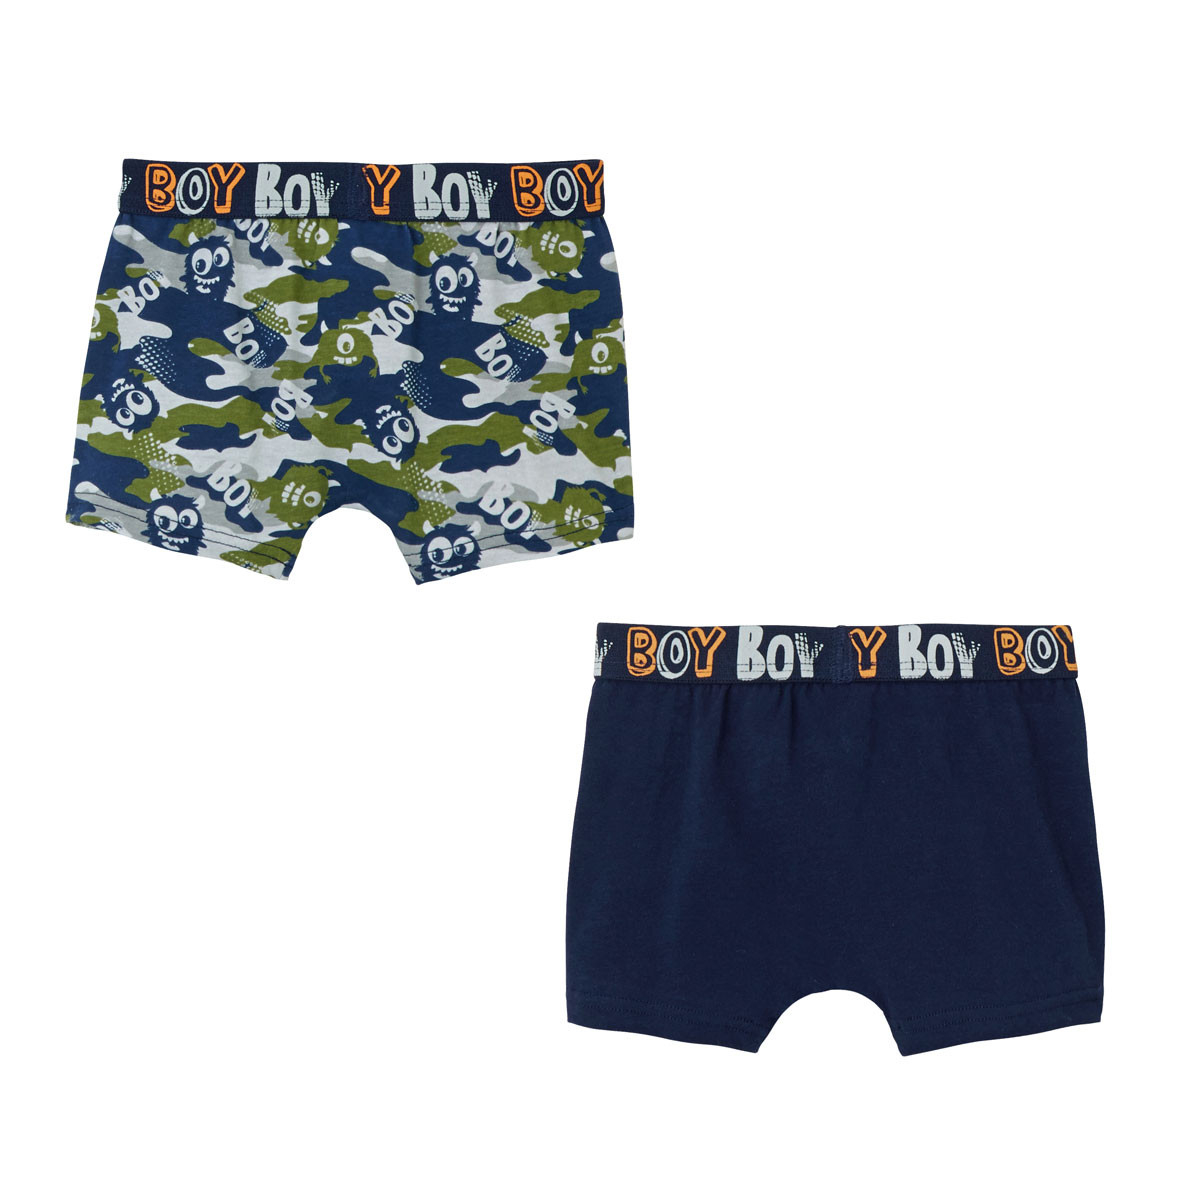 Lot de 2 boxers garçon Little Boy dos